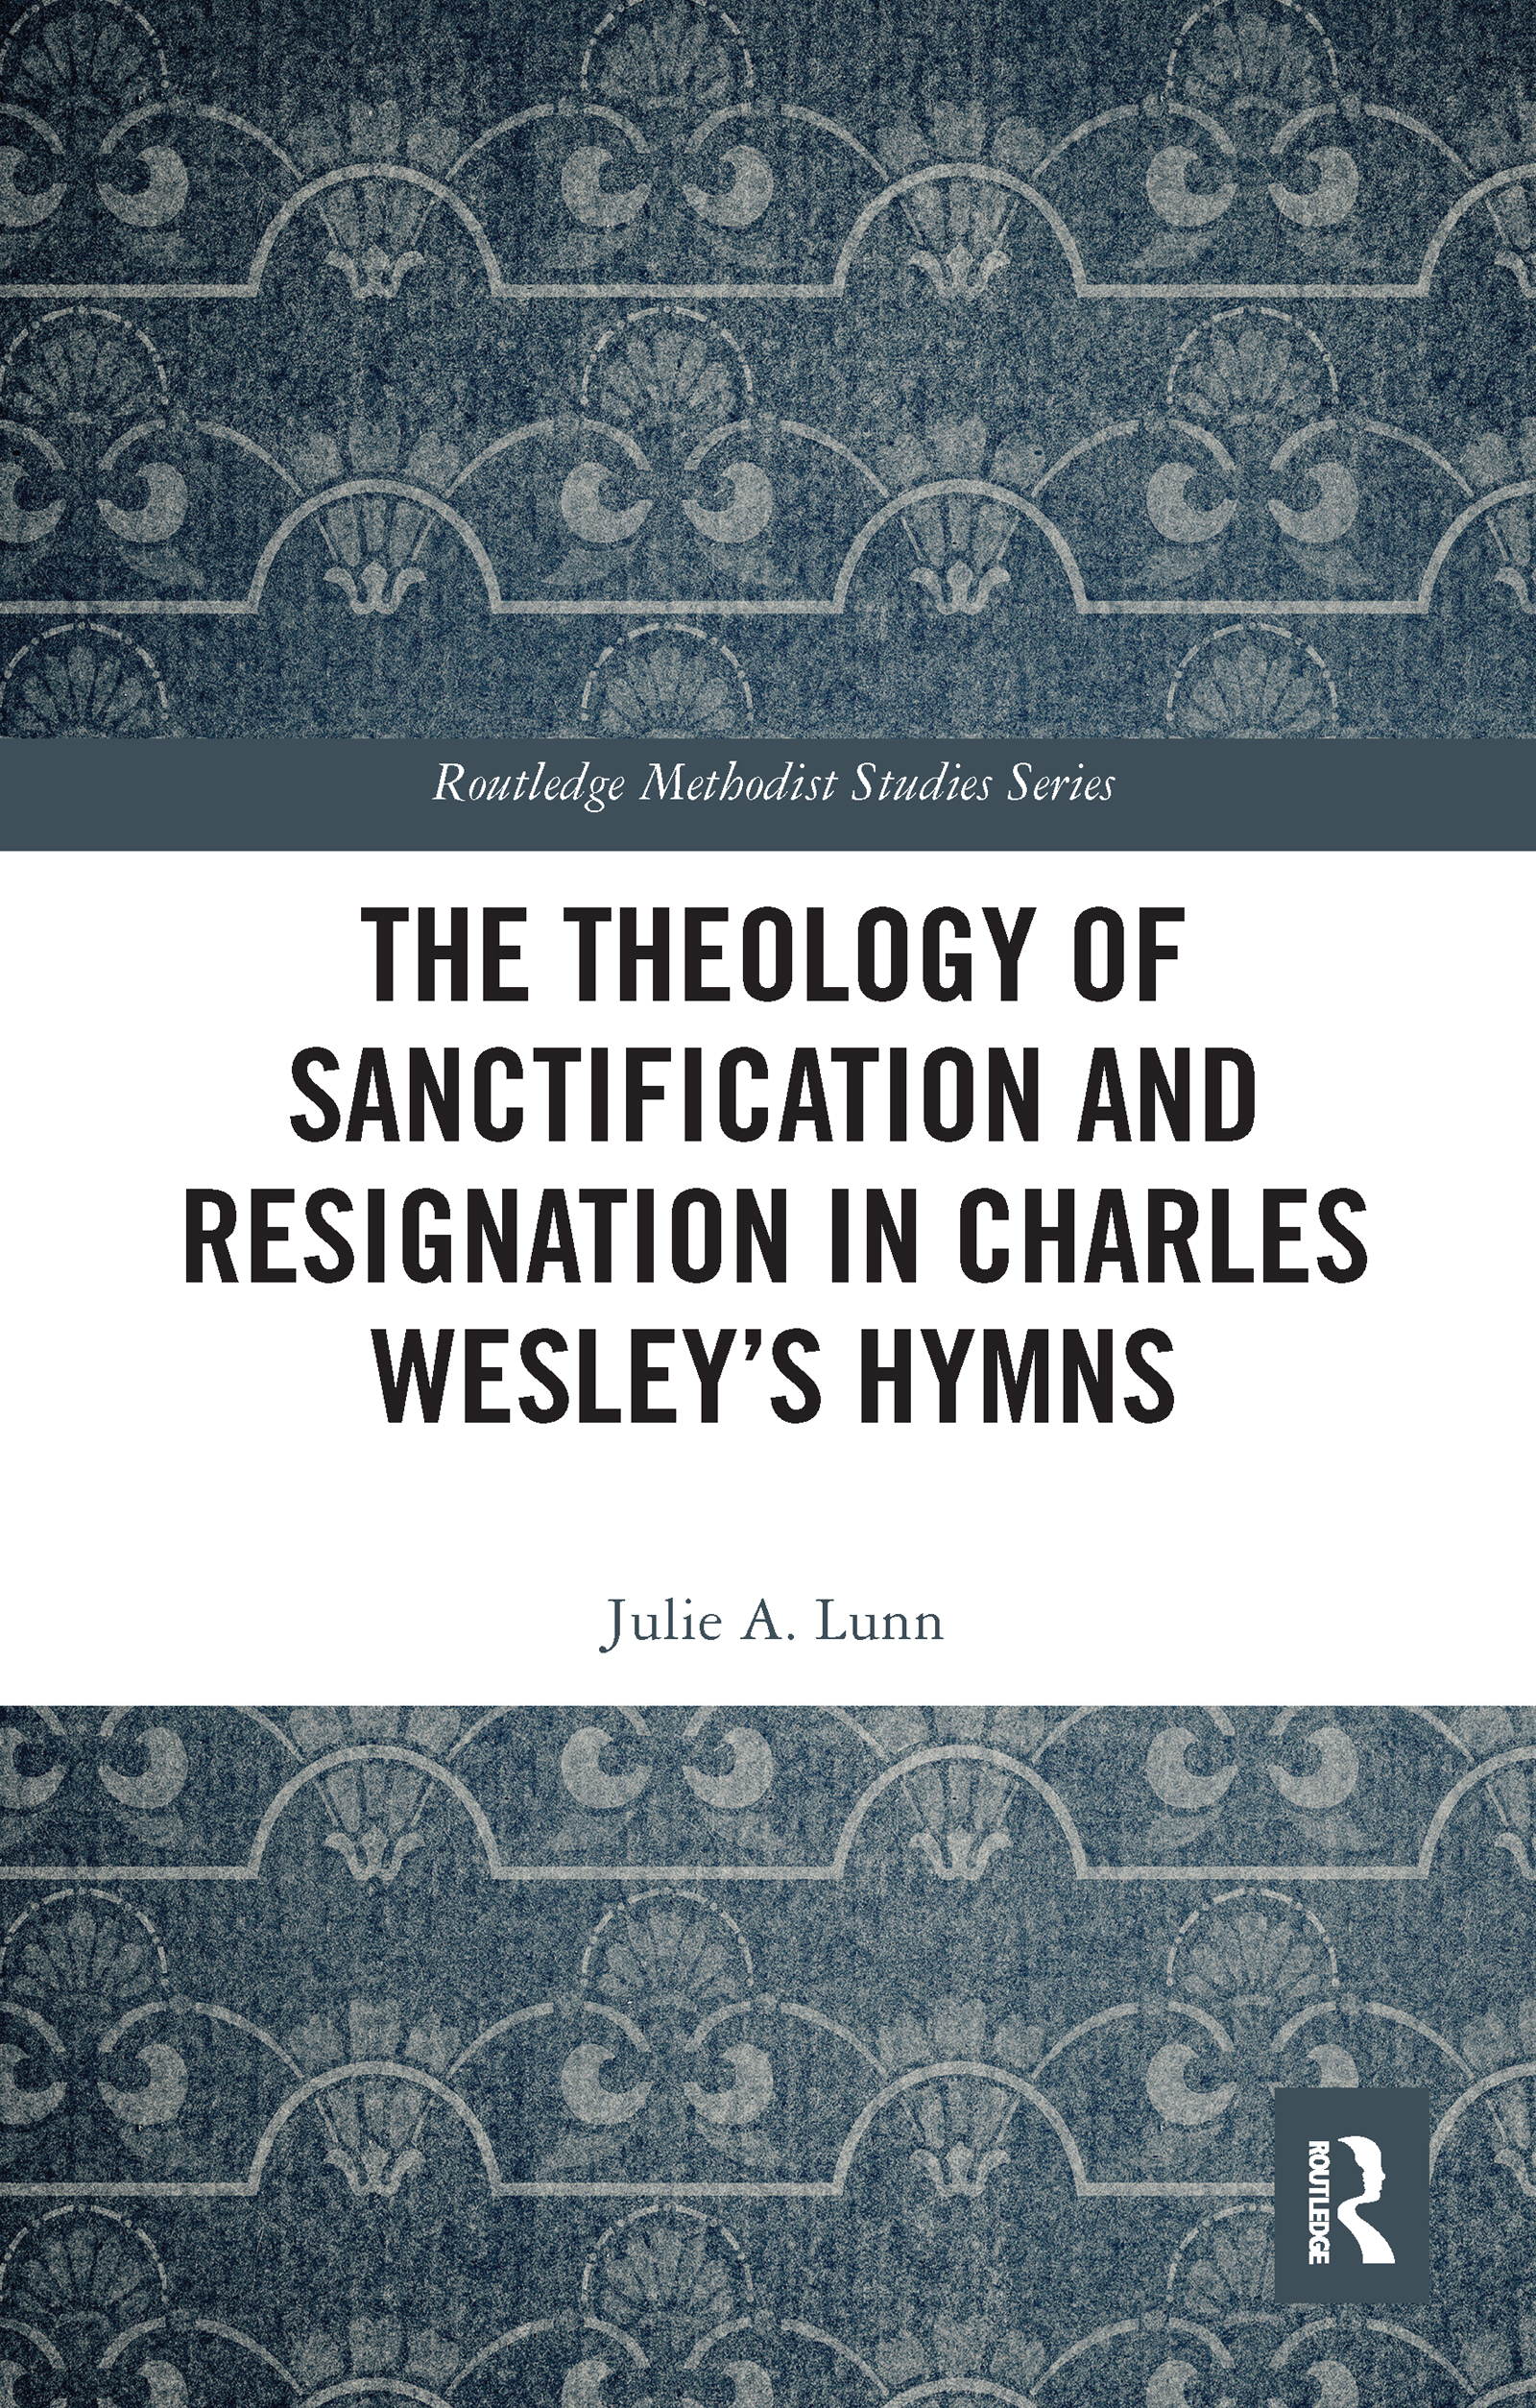 The Theology of Sanctification and Resignation in Charles Wesley's Hymns